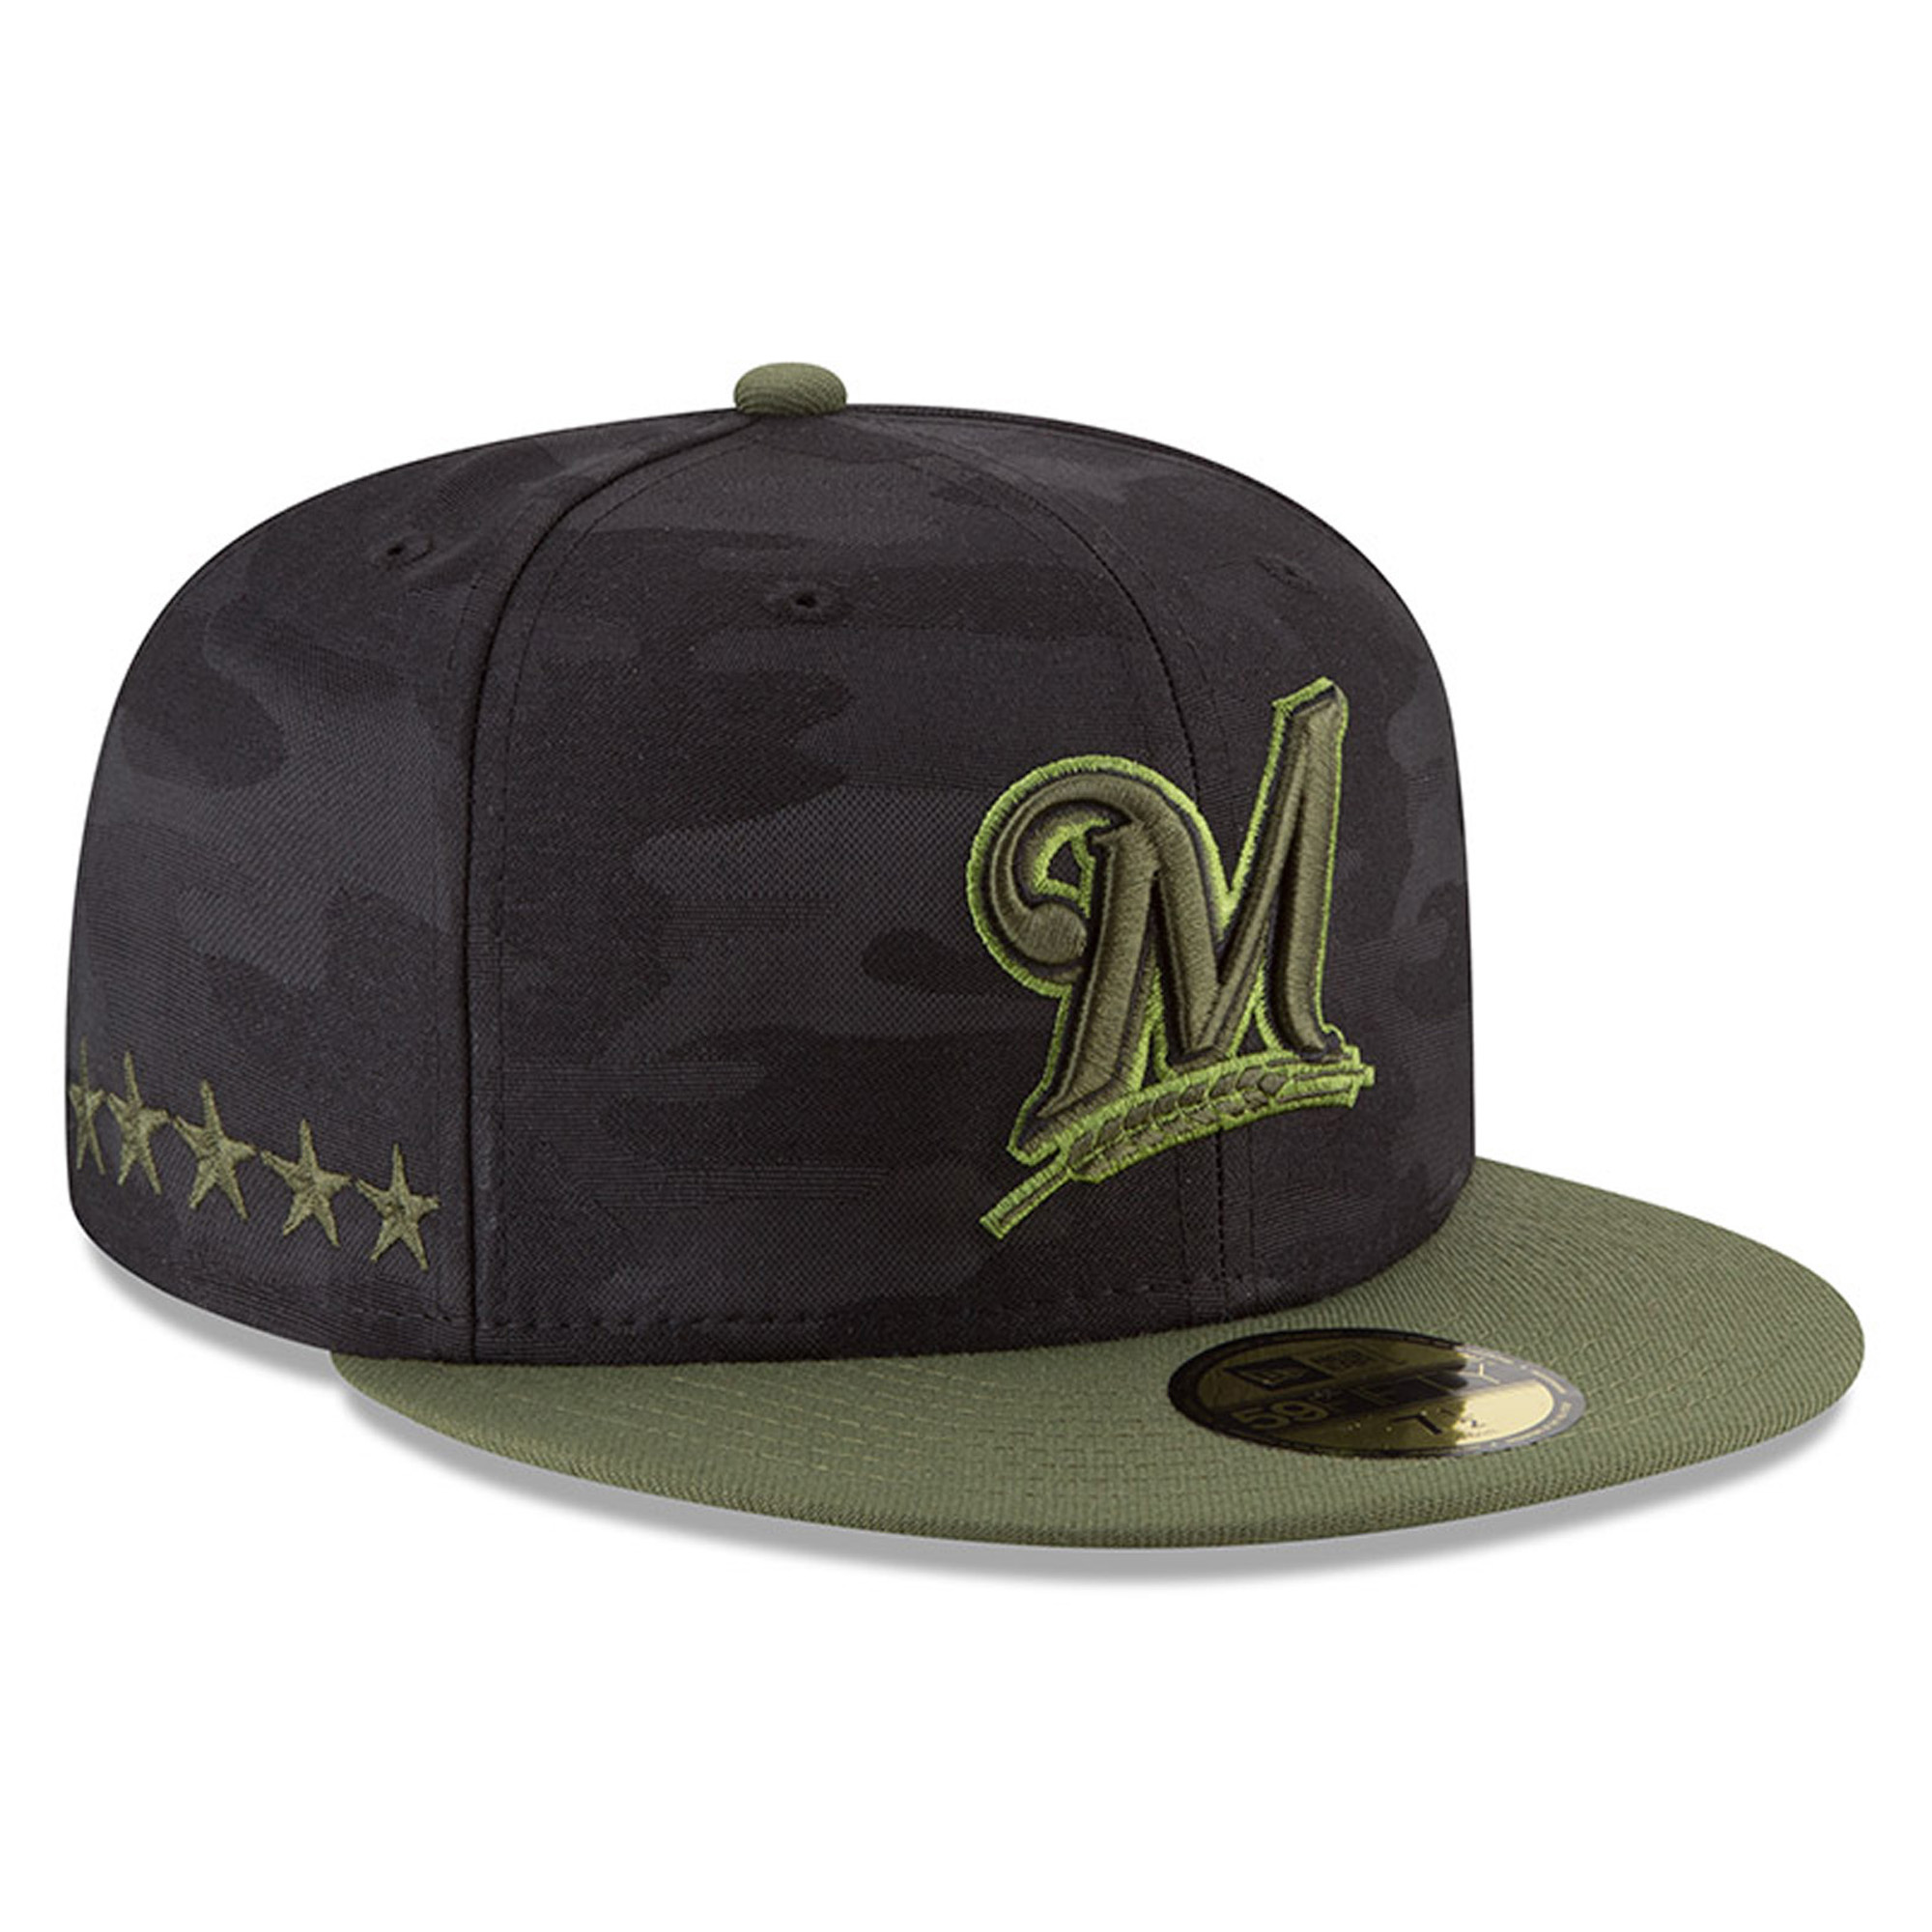 Milwaukee Brewers New Era 2018 Memorial Day On-Field 59FIFTY Fitted Hat - Black - 6 7/8